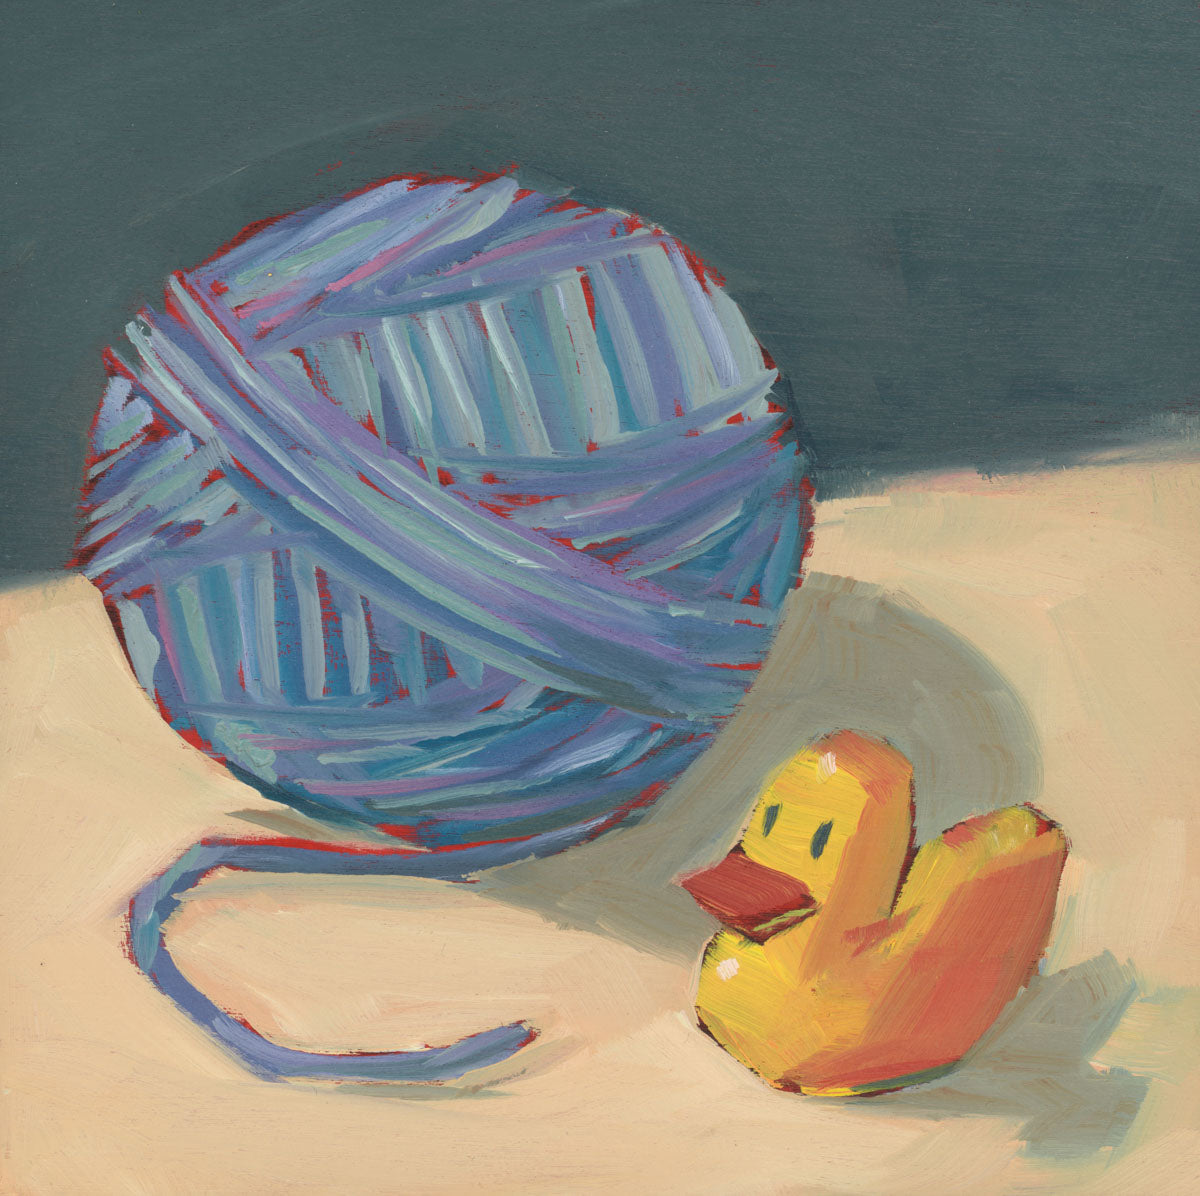 1313: Will Someone Knit Me a Sweater?